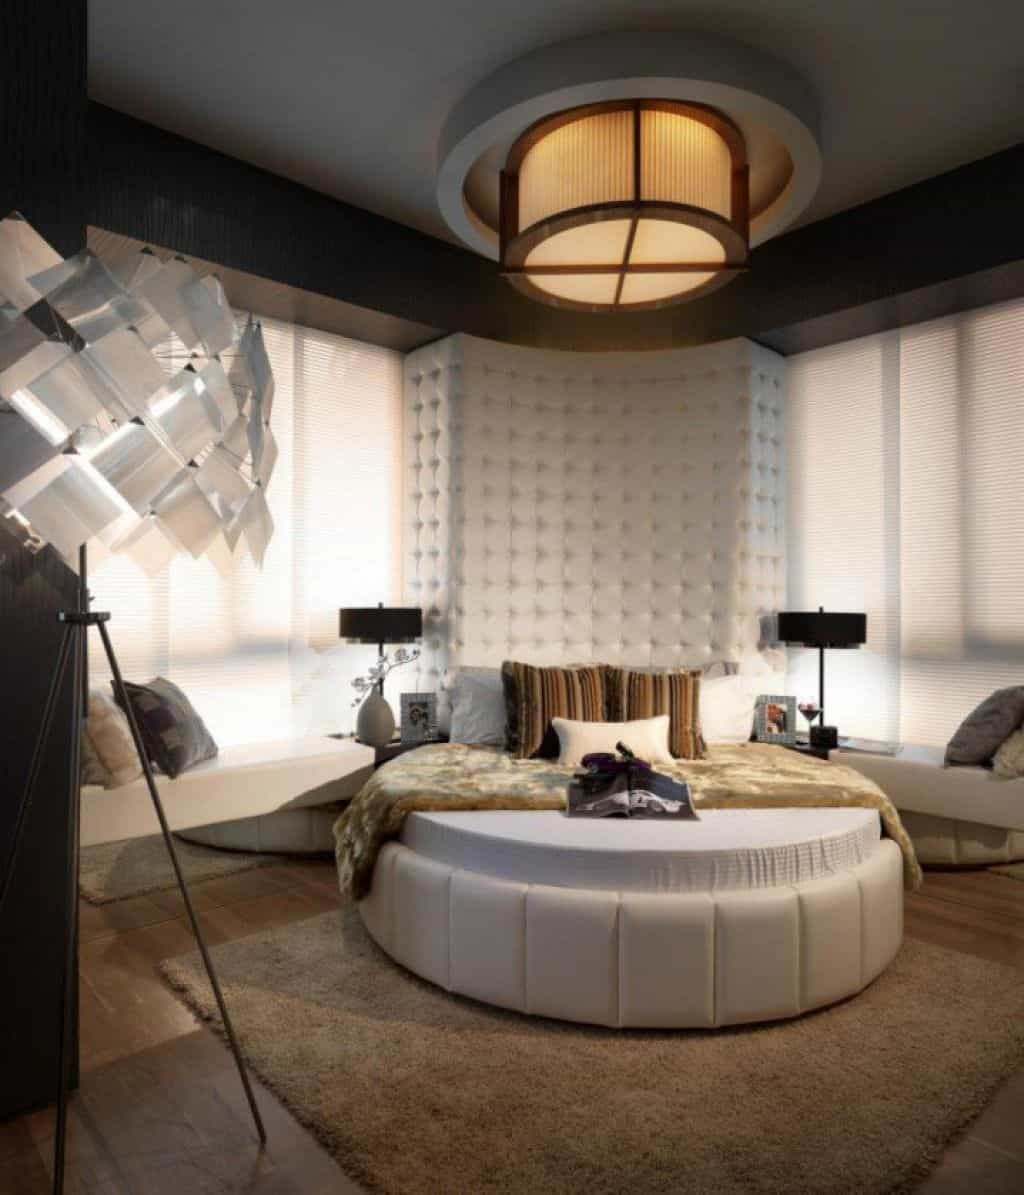 Round Bed Desing Ideas For Your Modern Bedroom in 2020 | Round beds, Bedroom  design, Bed design